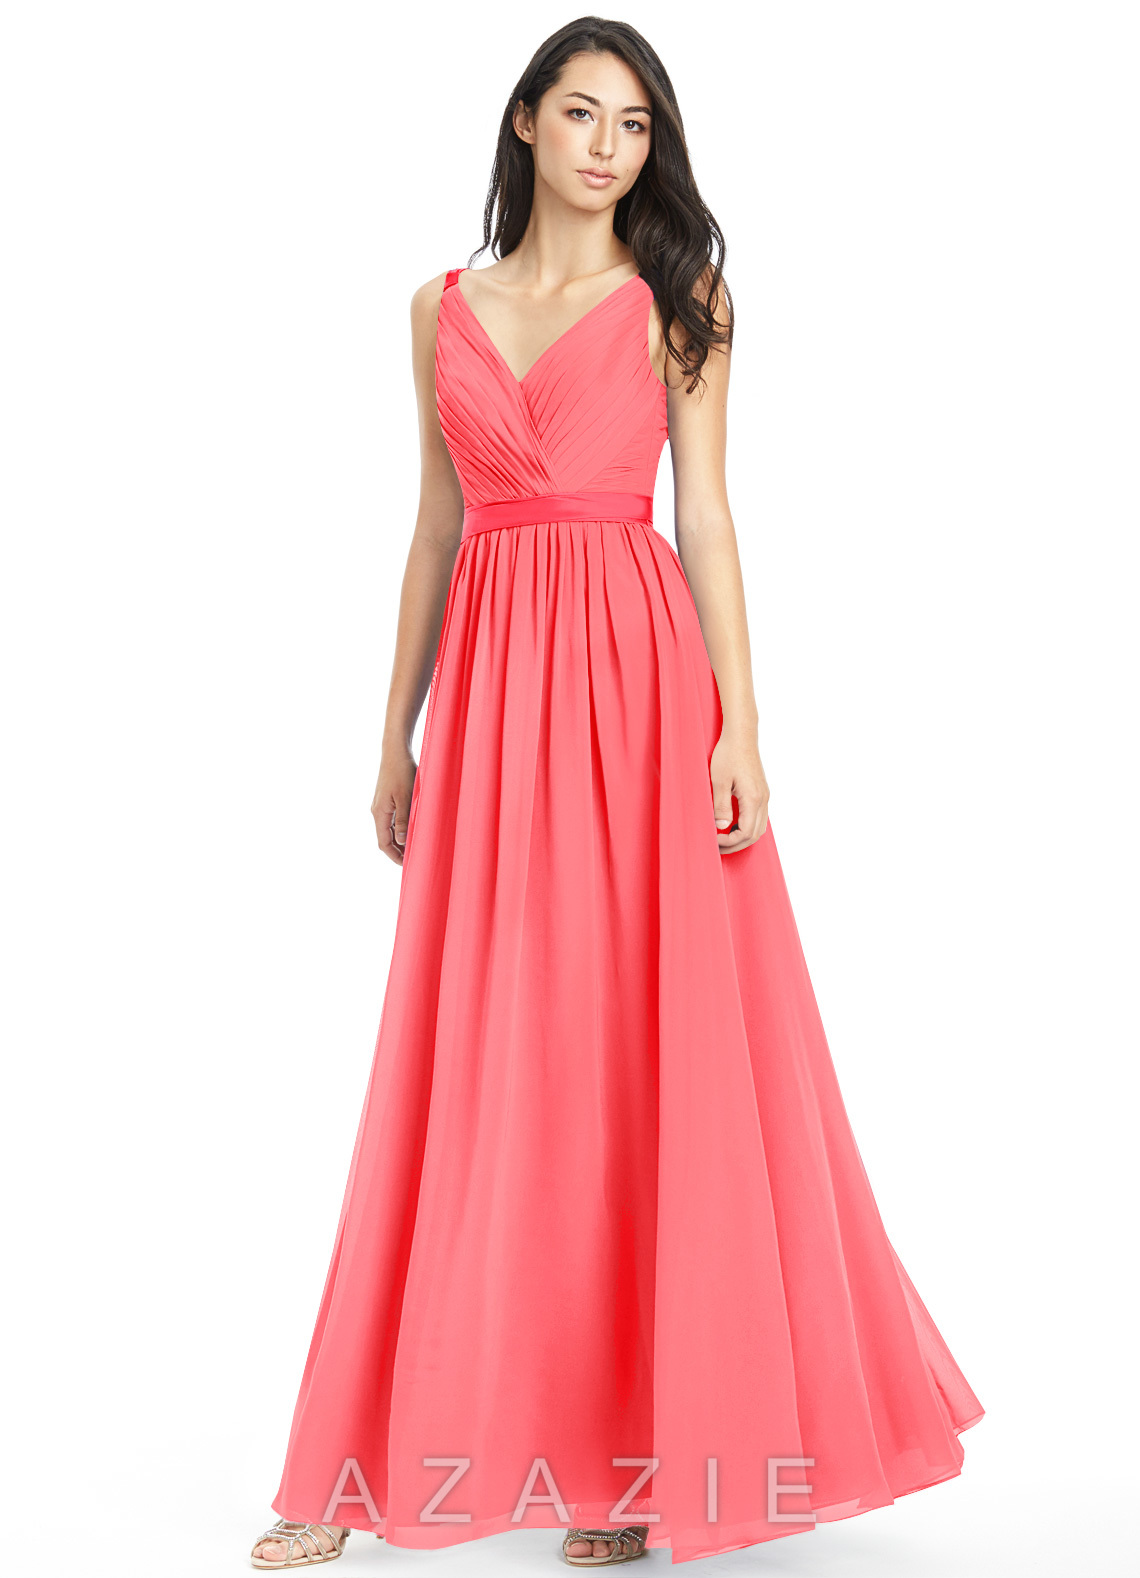 Azazie leanna bridesmaid dress azazie color watermelon ombrellifo Images